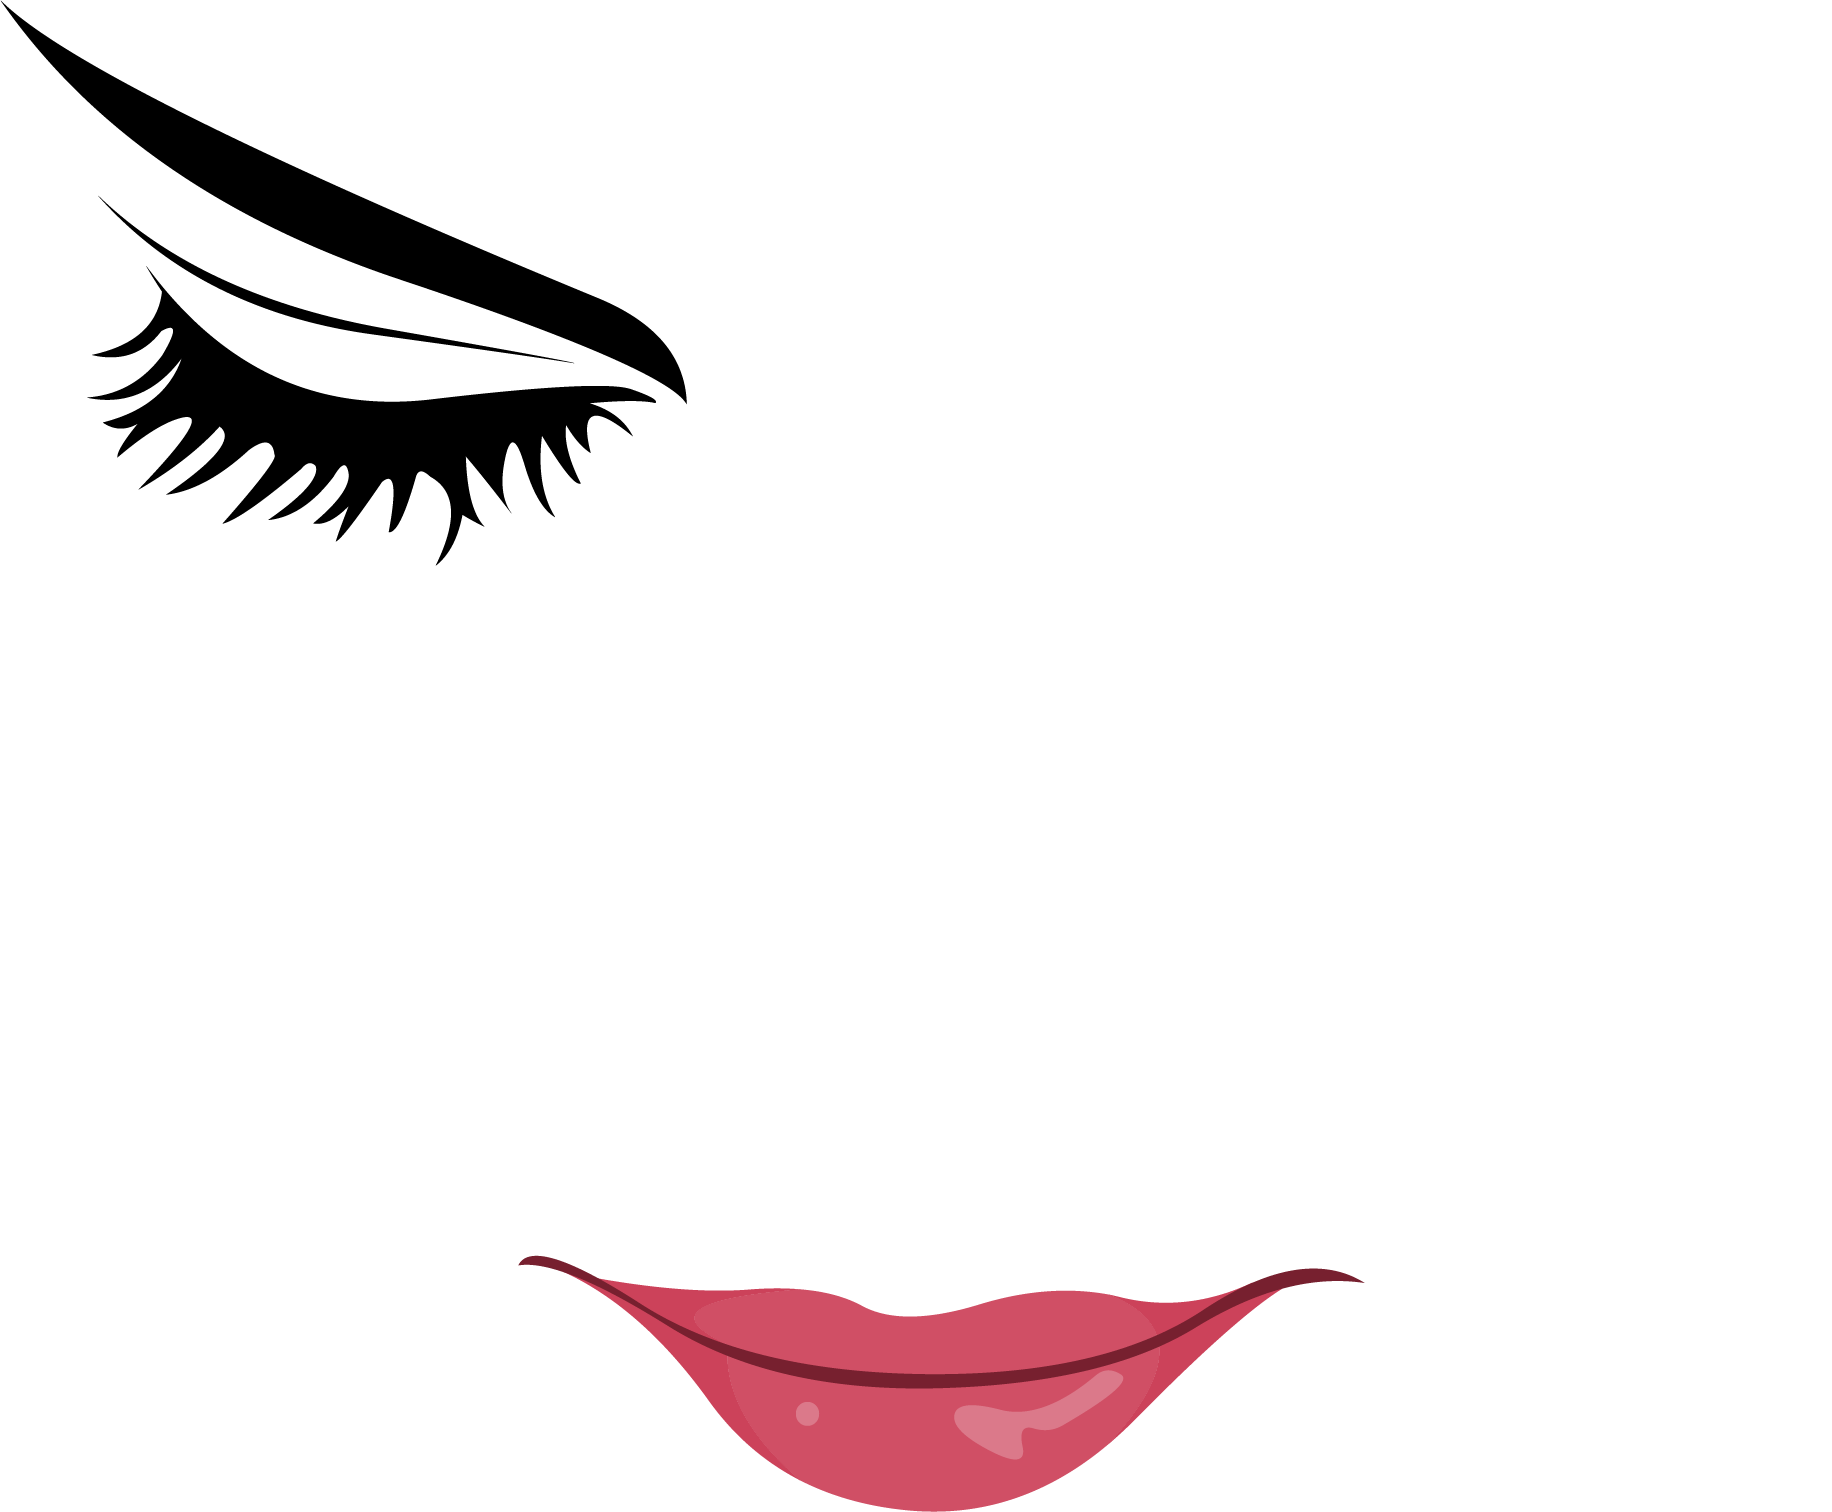 Eye clipart ojos. Woman with eyes closed